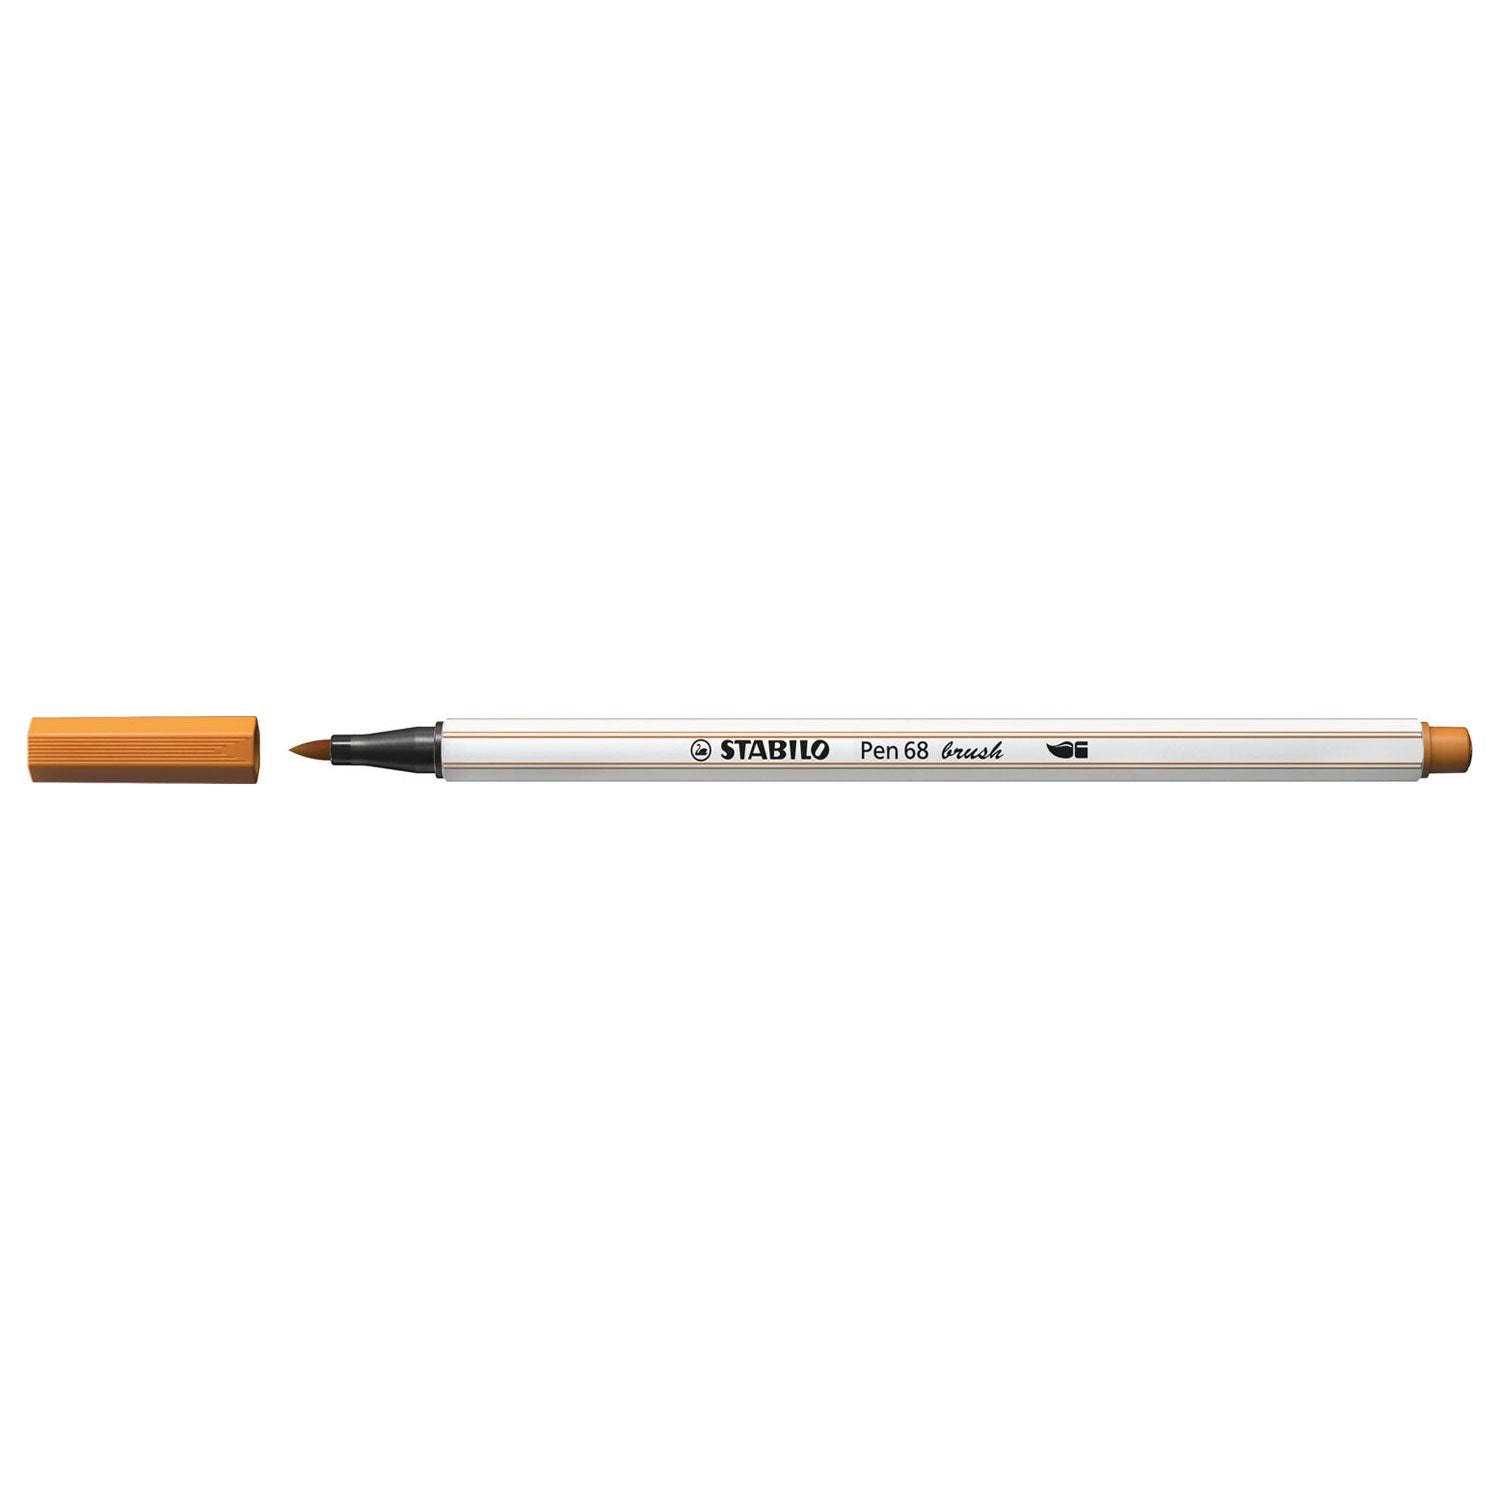 Stabilo Pen 68 Brush - 89 Donker Oker - JournalnStuff